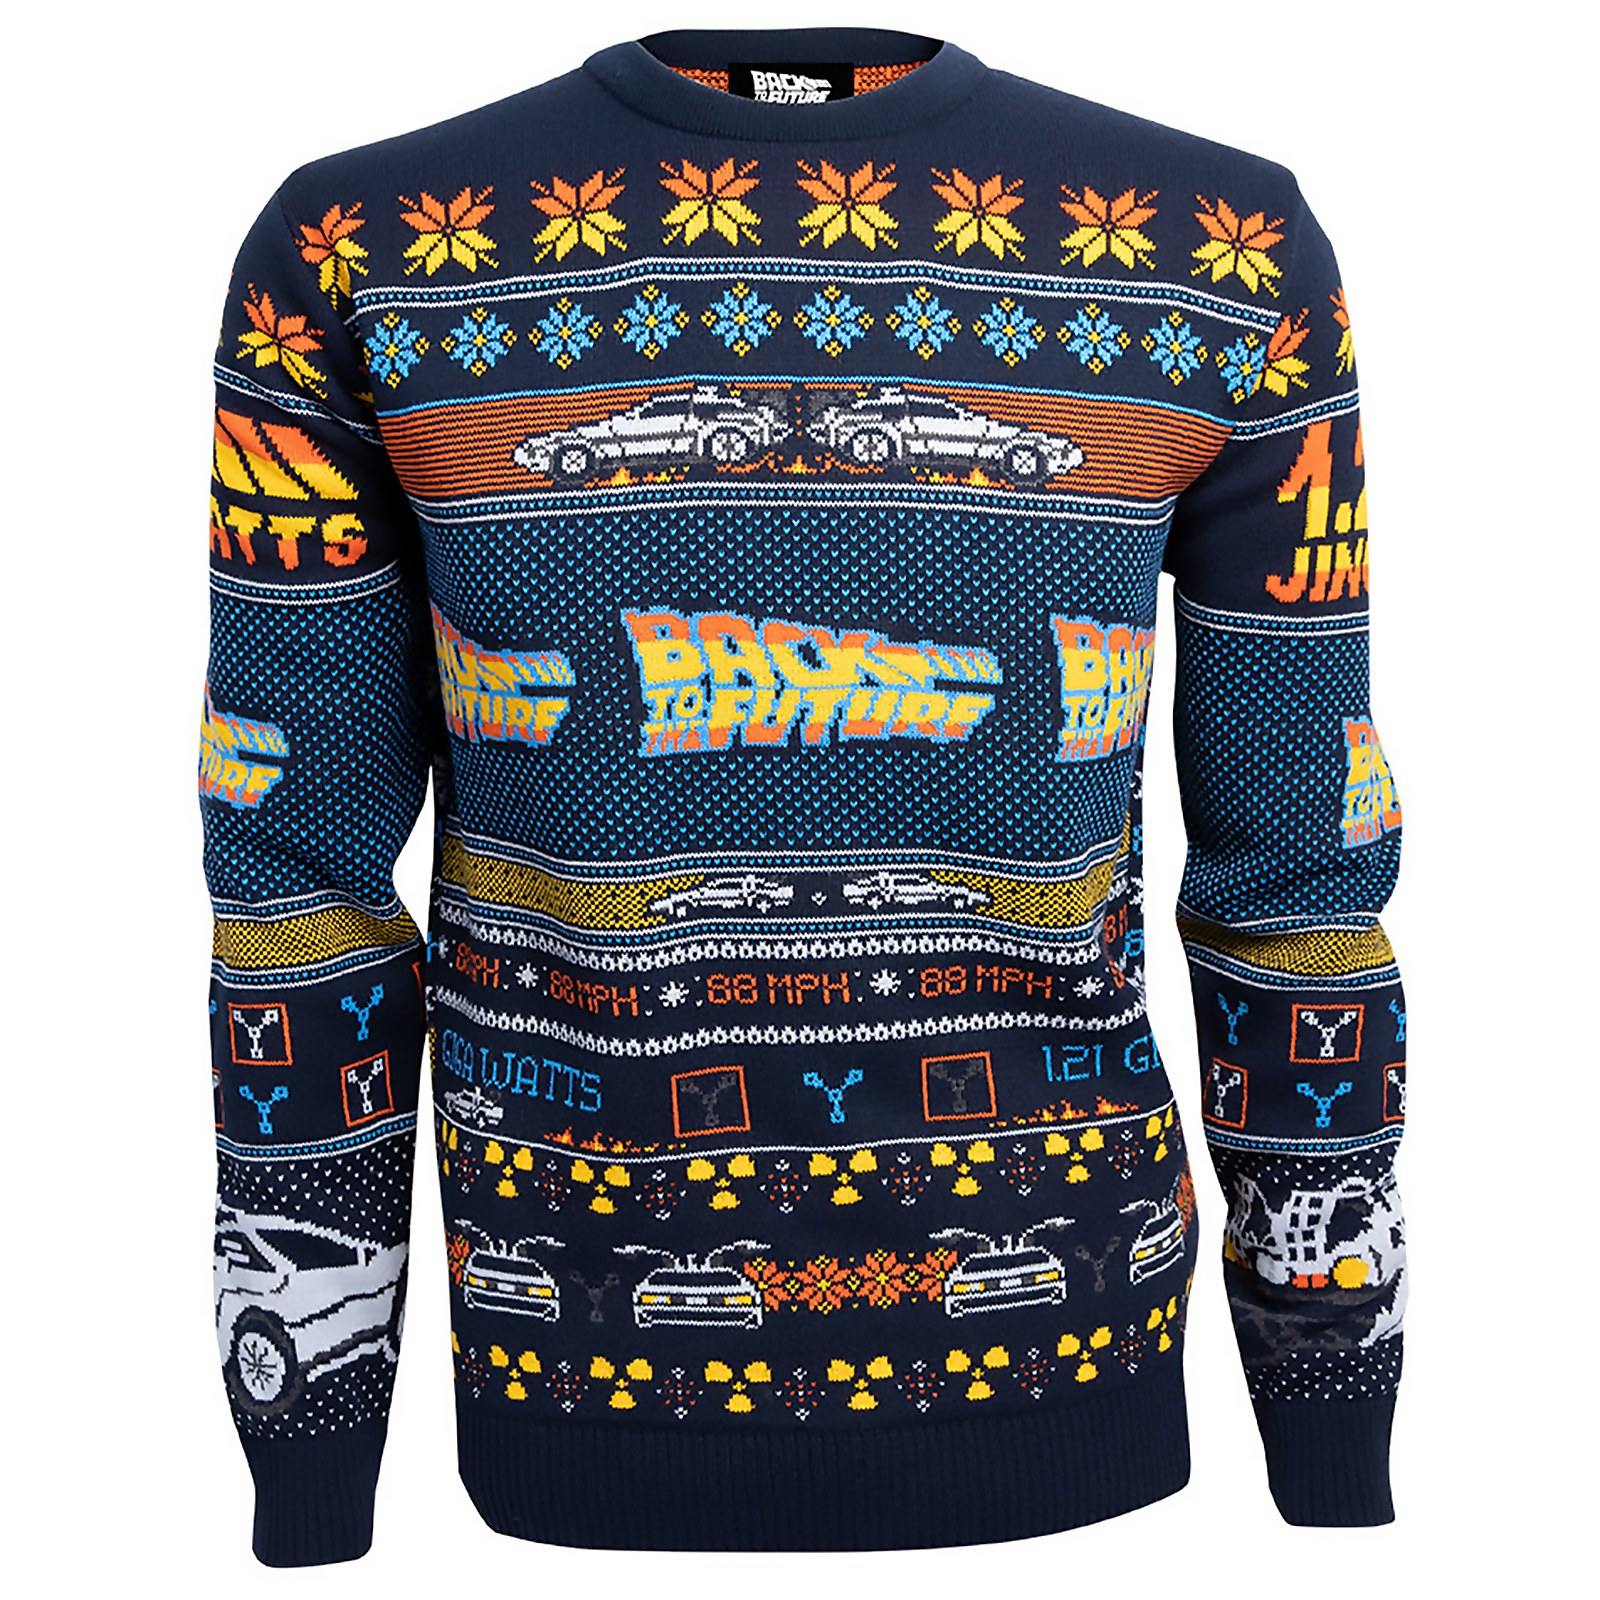 Back To The Future Christmas Knitted Jumper - Navy - M